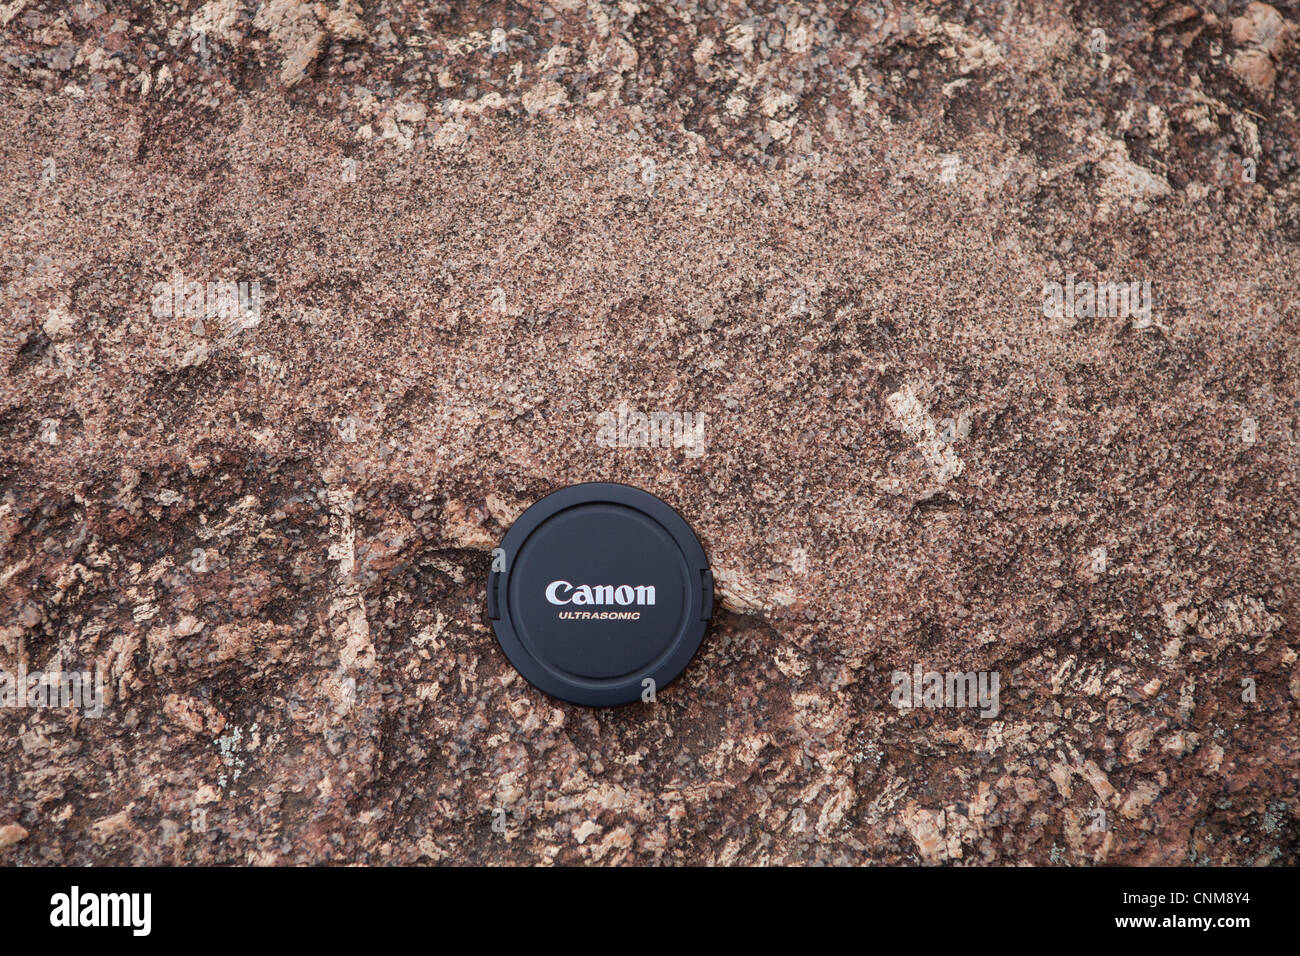 A finer grained granitic material intruding a coarser grained host granite as a dyke at Wave Rock, Hyden, Australia. Stock Photo